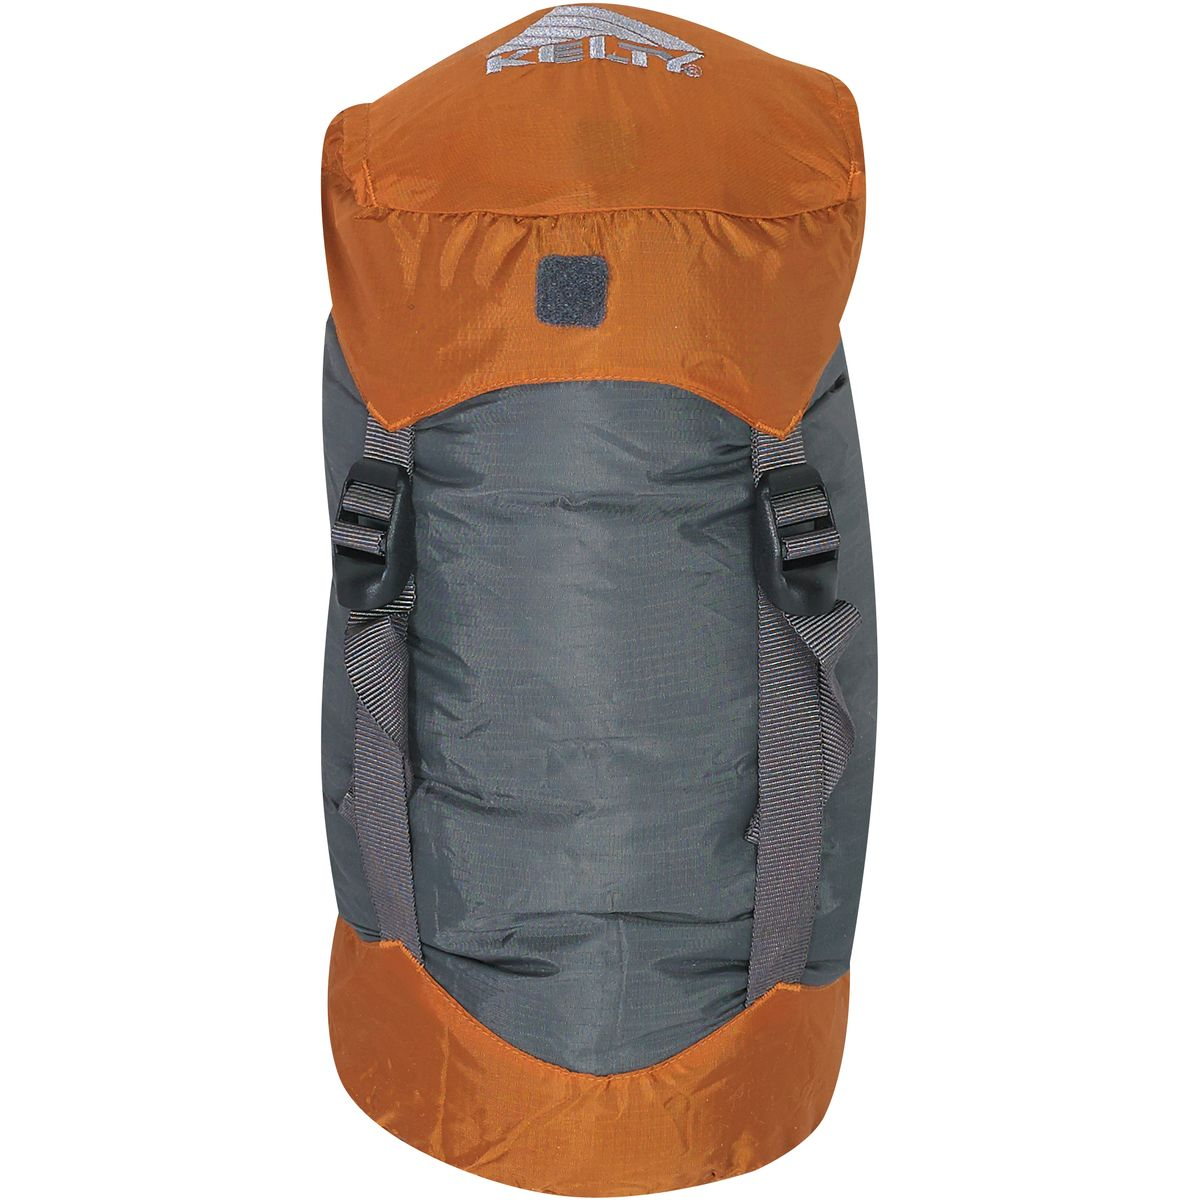 Kelty Compression Stuff Sacks